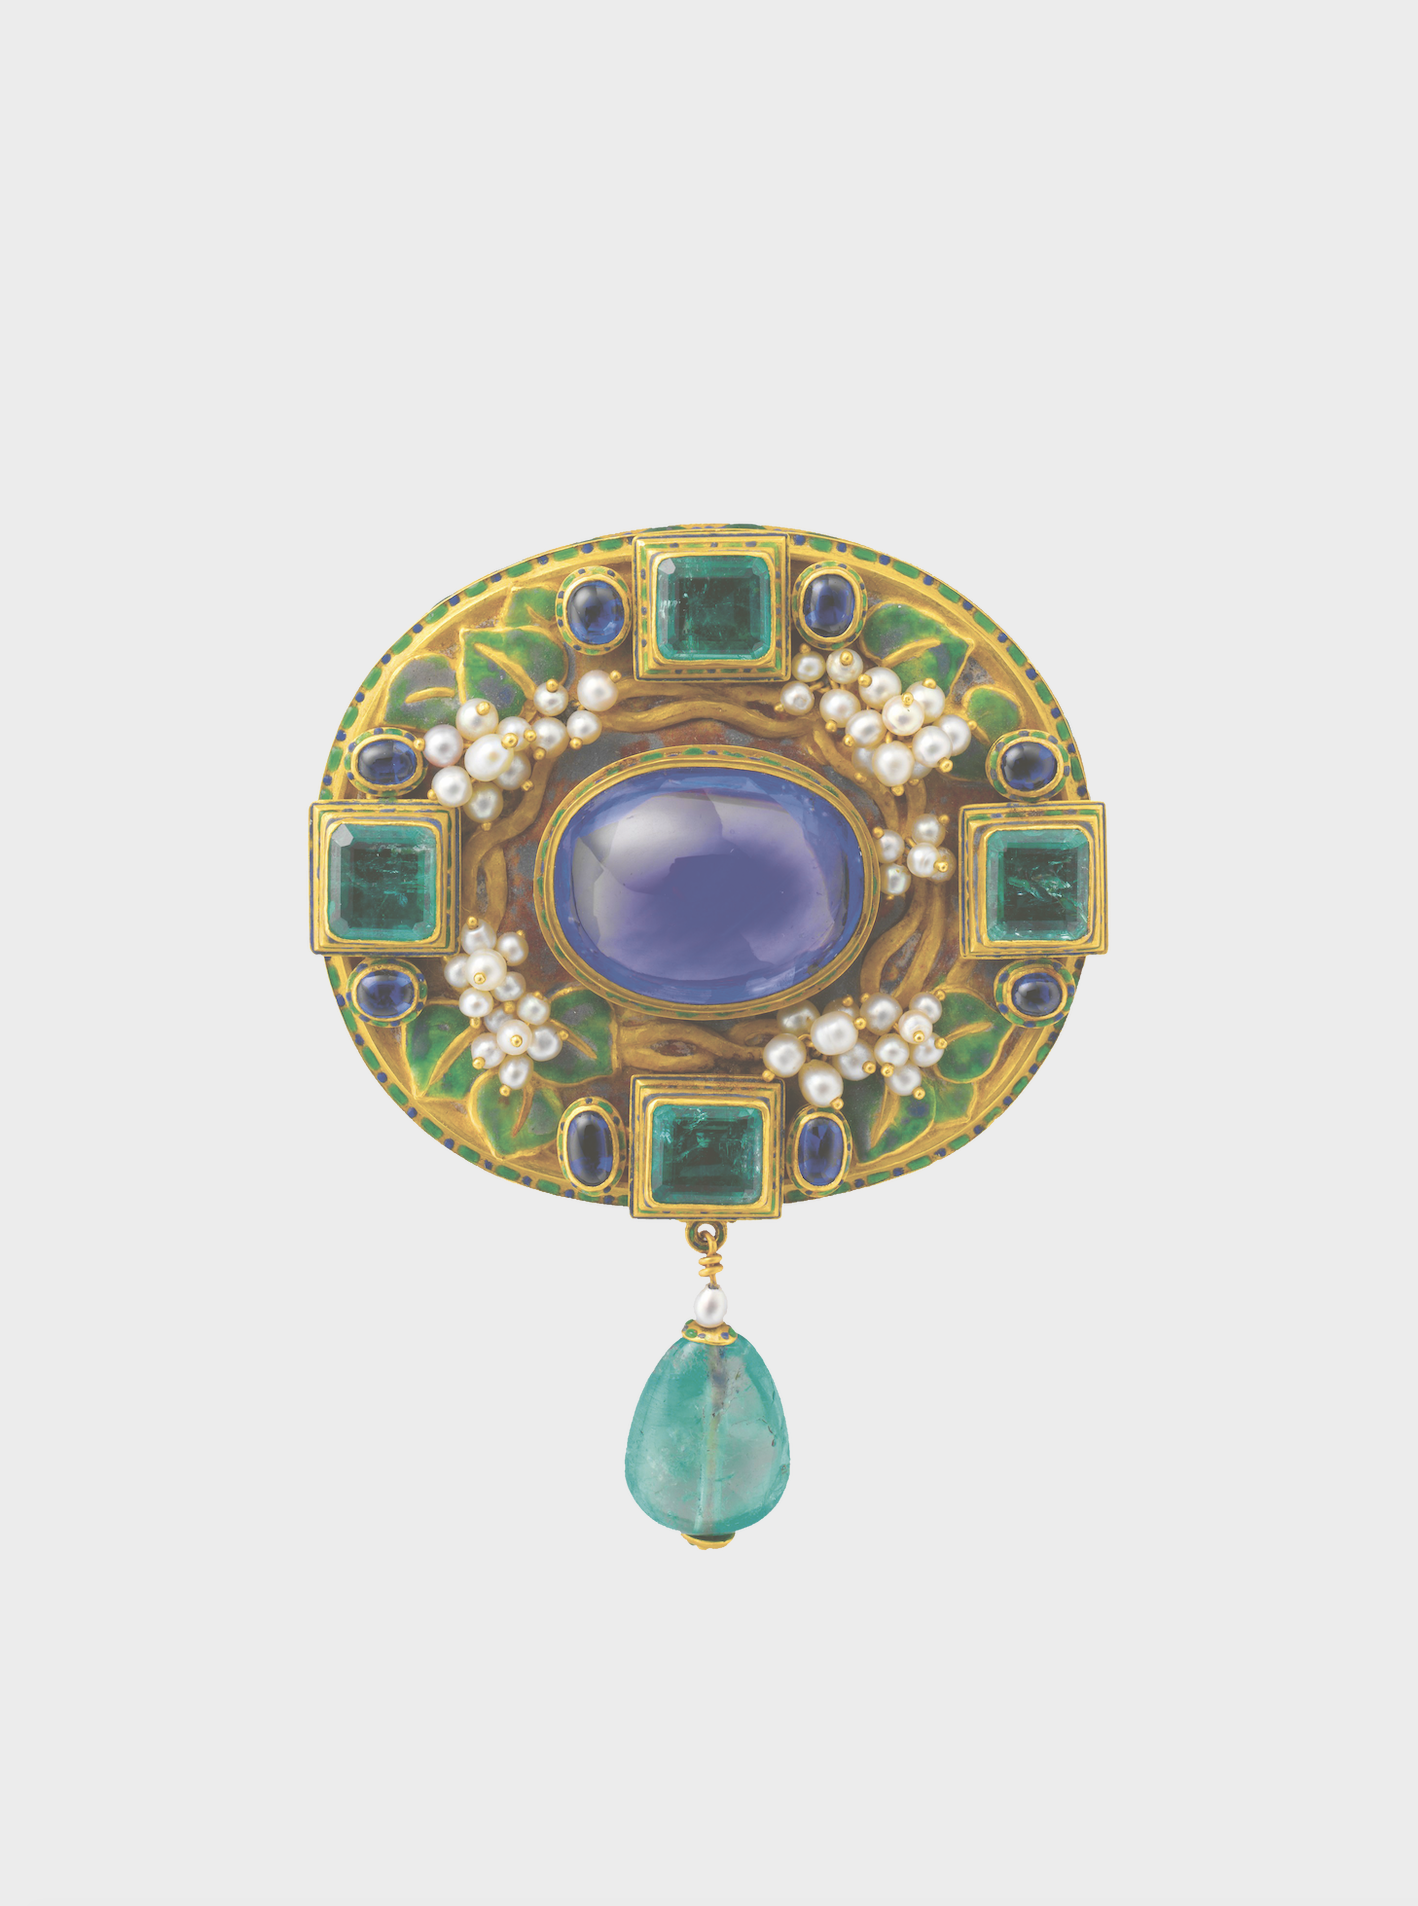 Emerald, sapphire and seed pearl enamelled gold brooch by Florence Koehler, c. 1905 The Metropolitan Museum of Art, New York